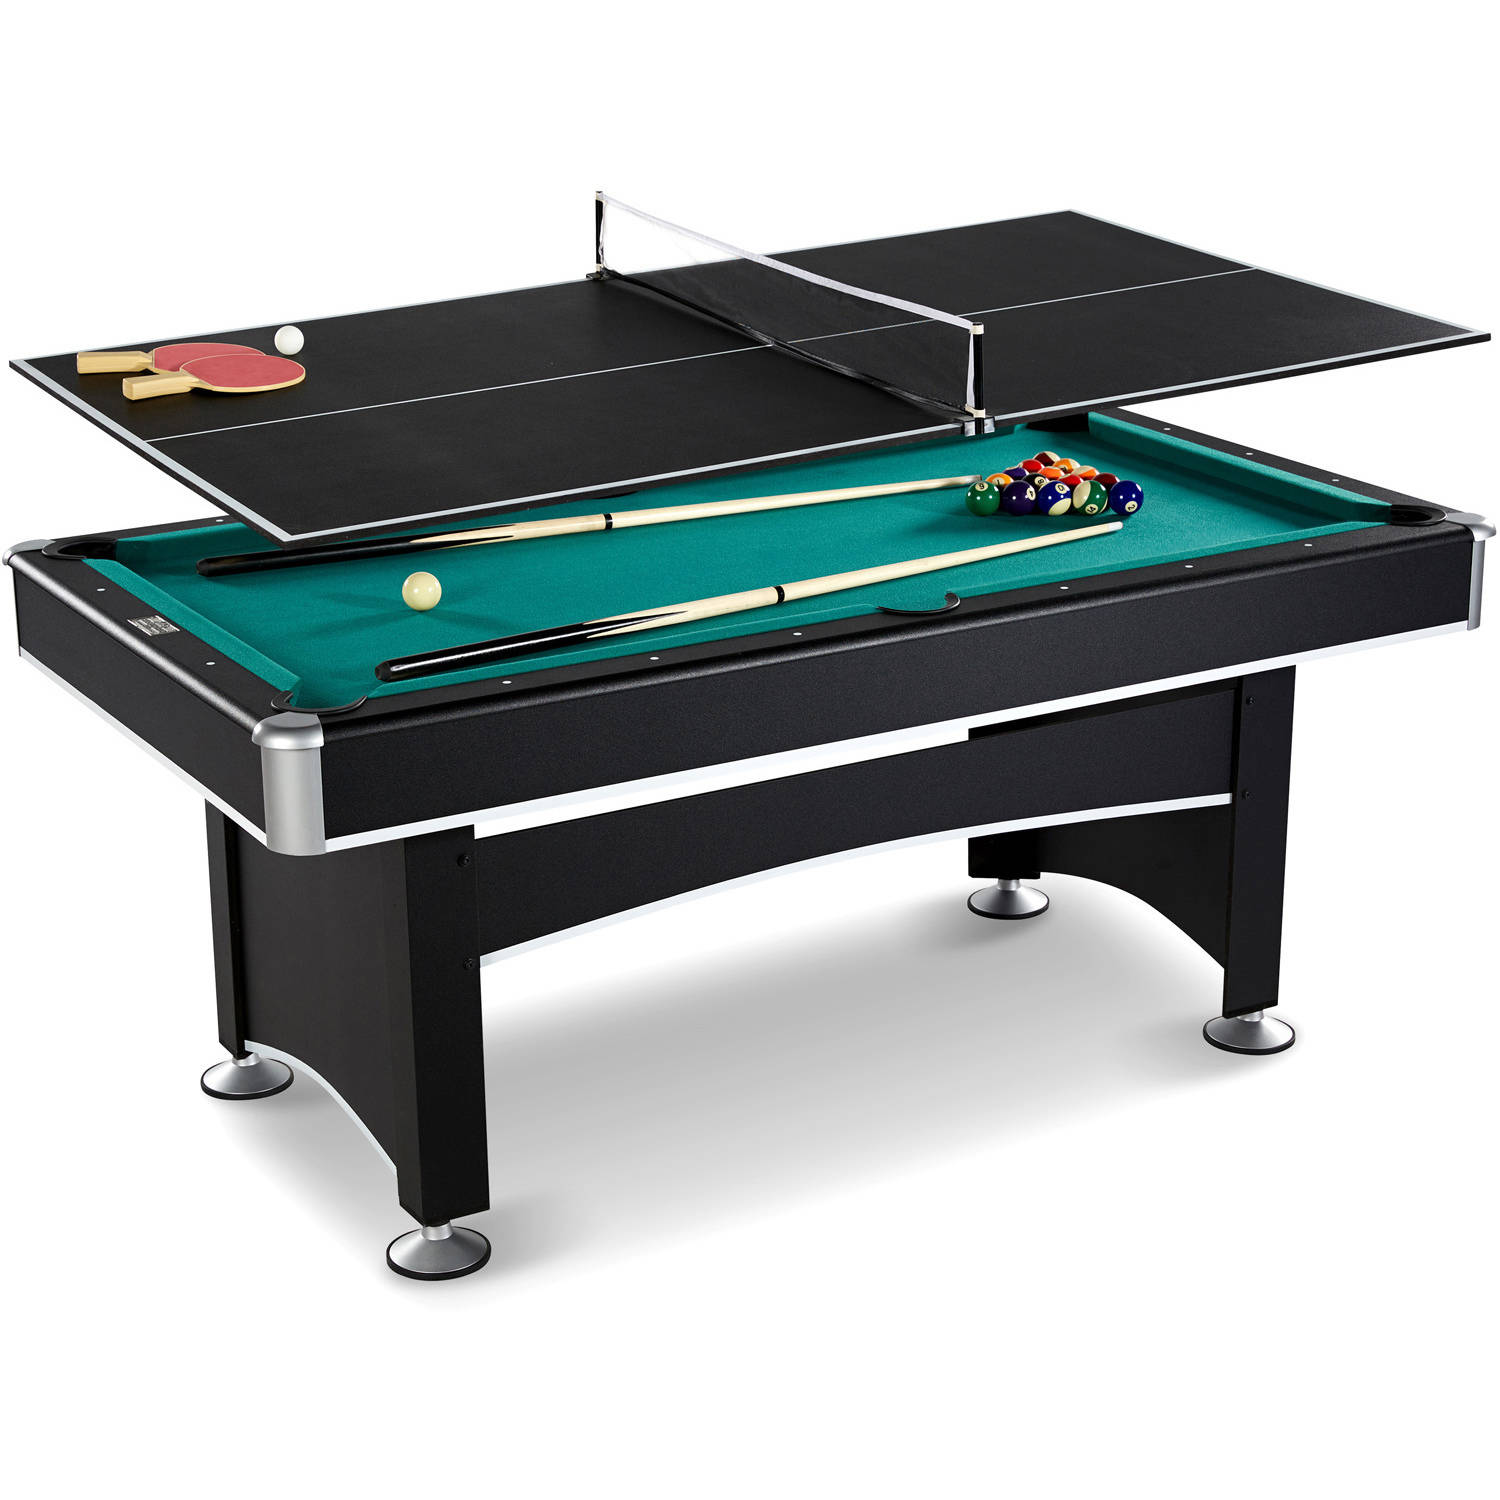 Barrington 6 Ft. Arcade Billiard Table With Table Tennis Top And Accessory  Kit   Walmart.com